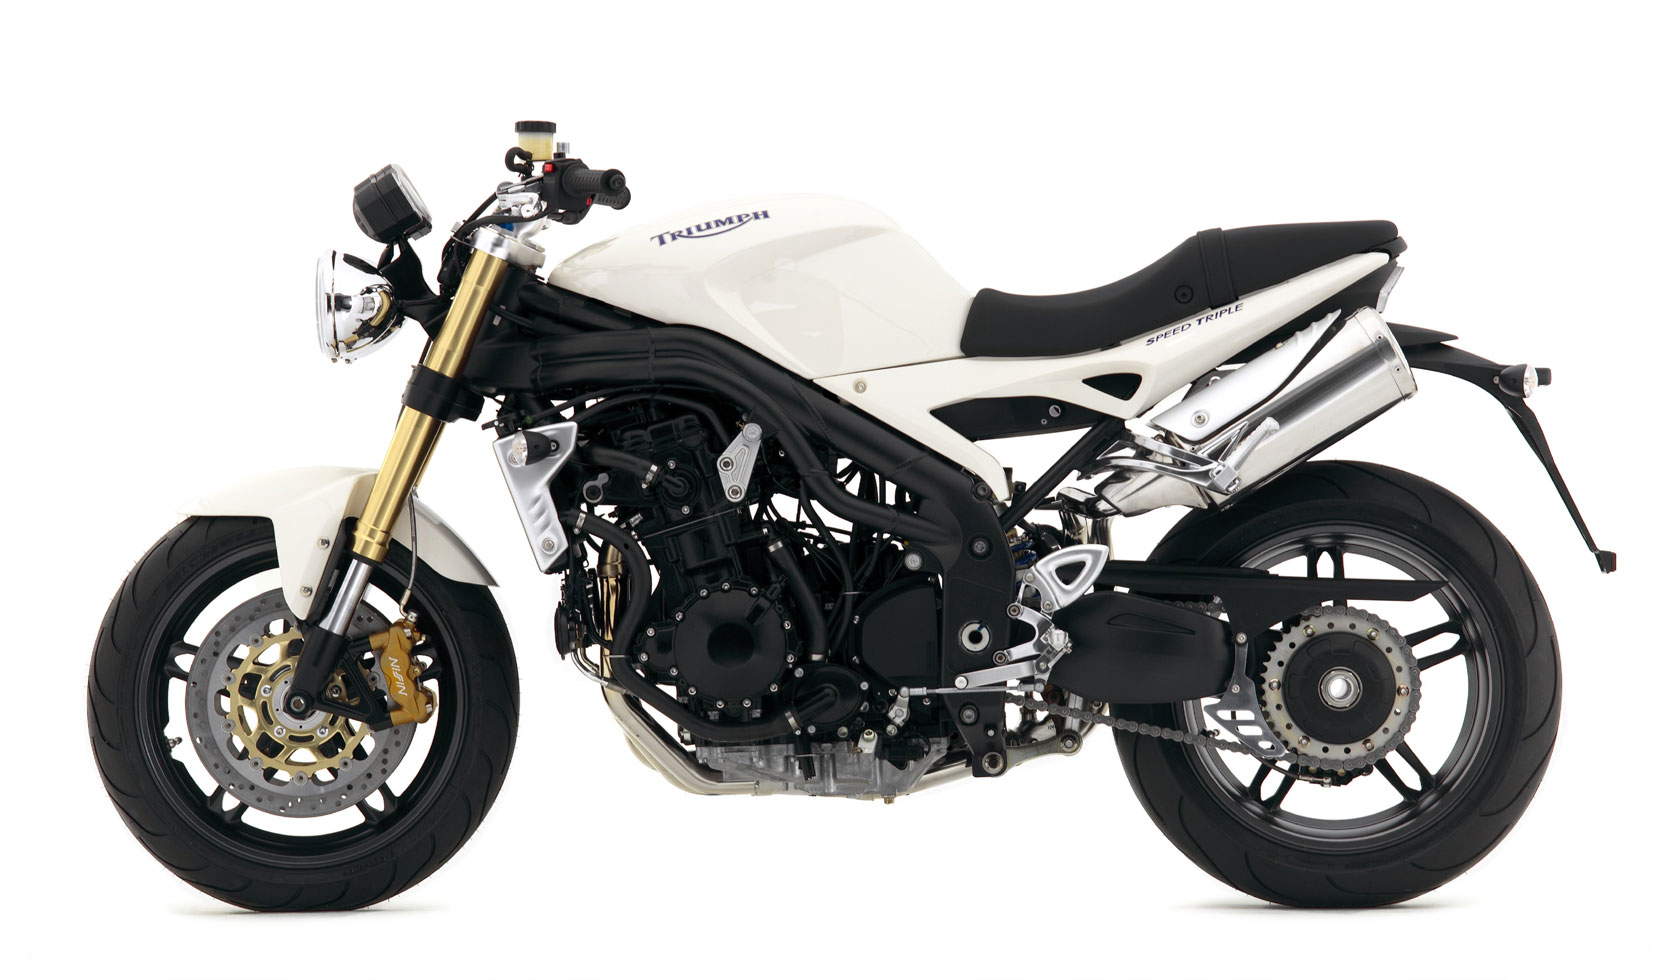 Triumph Speed Triple 1050 2006 images #147480